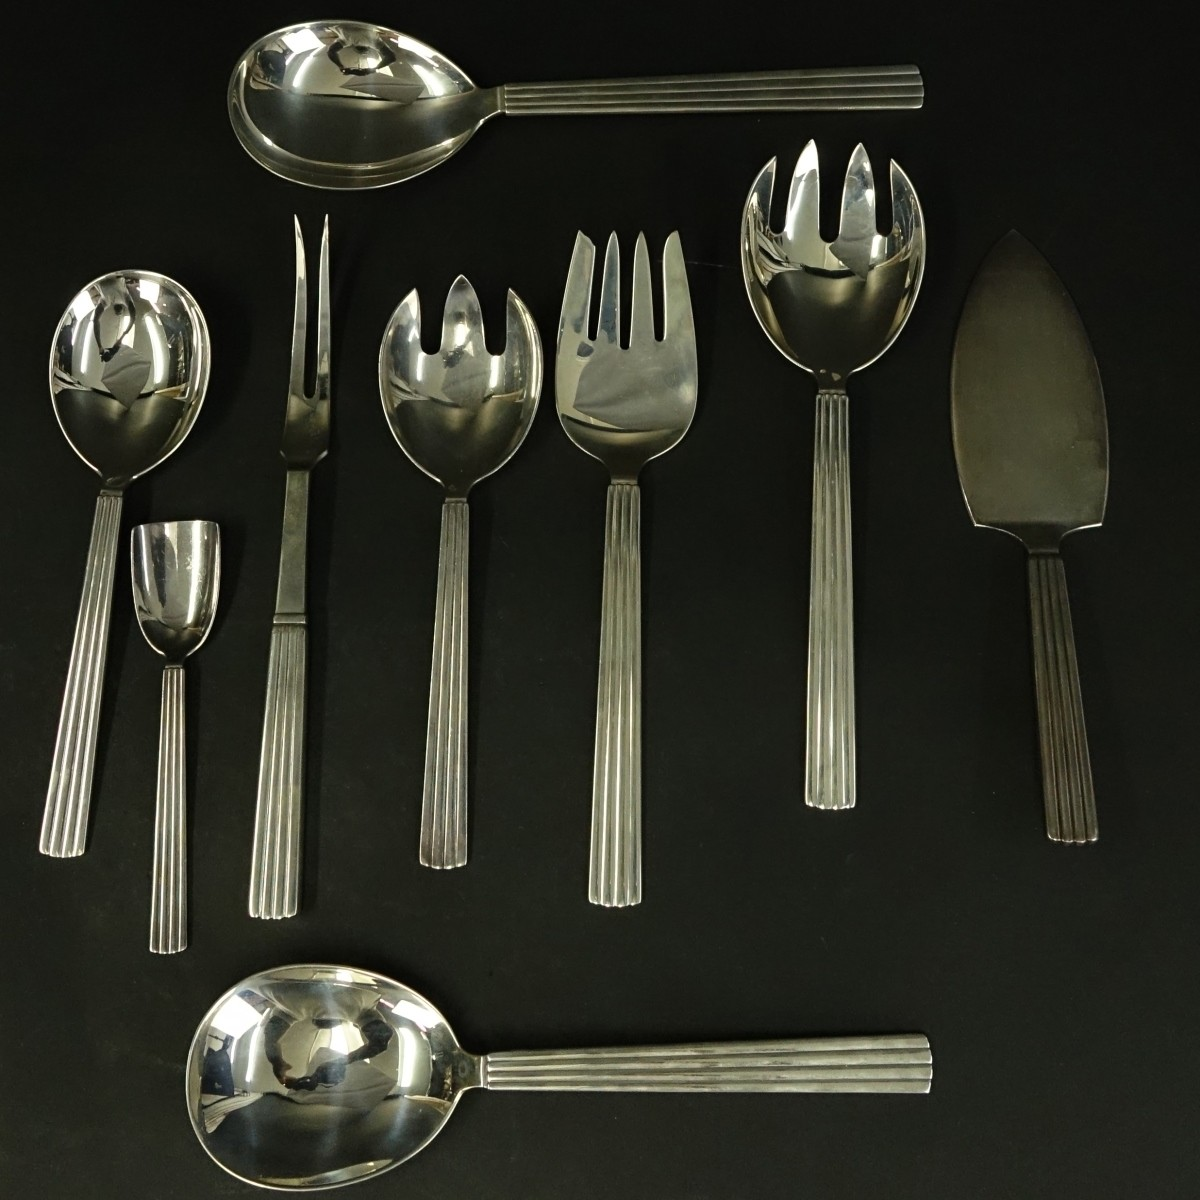 12 Georg Jensen Bernadotte Serving Pieces